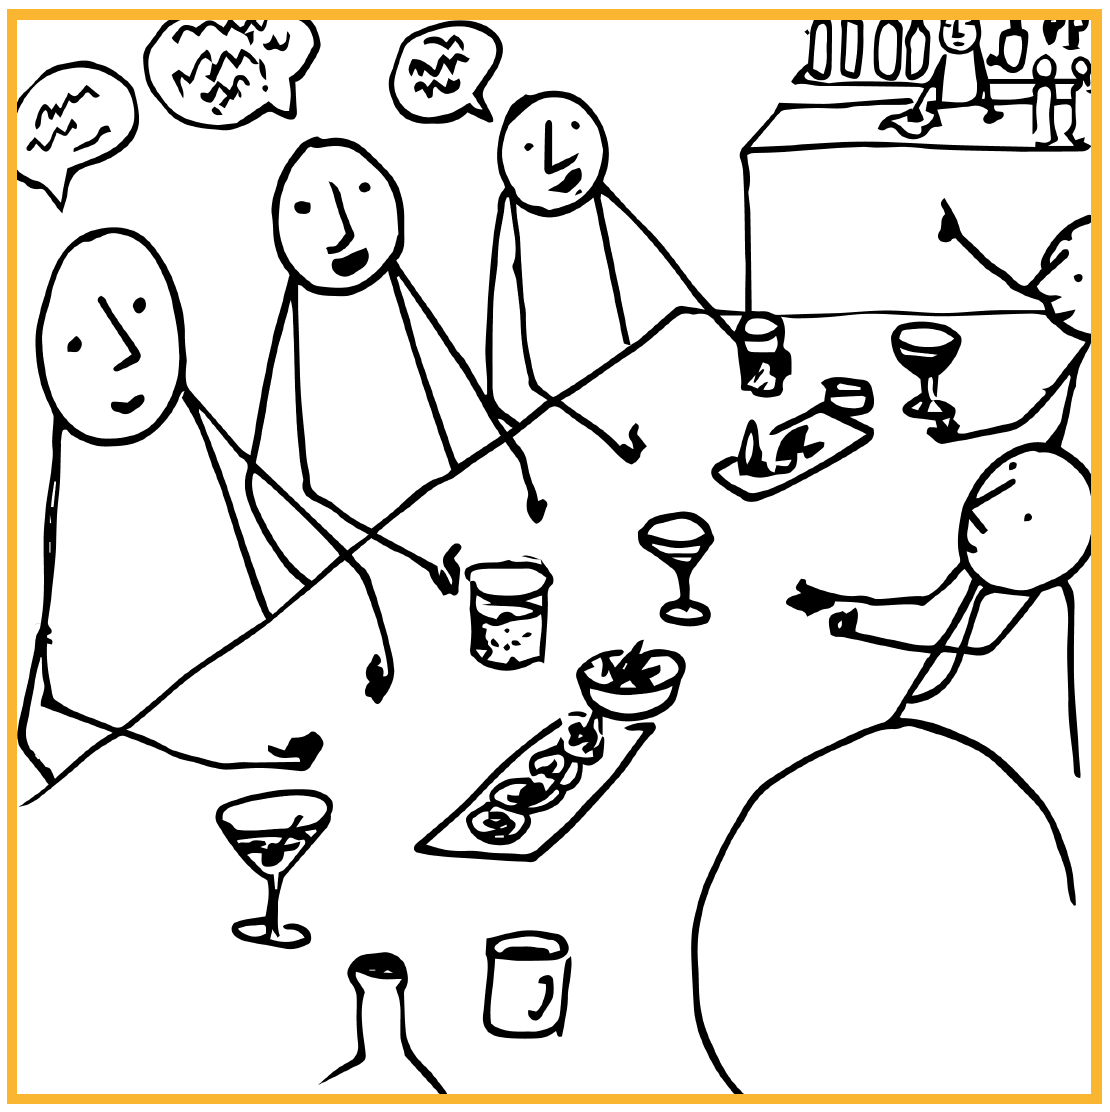 Opposites Attract   A system connecting people to discuss current events during meetup-style sessions at sponsored public locations.